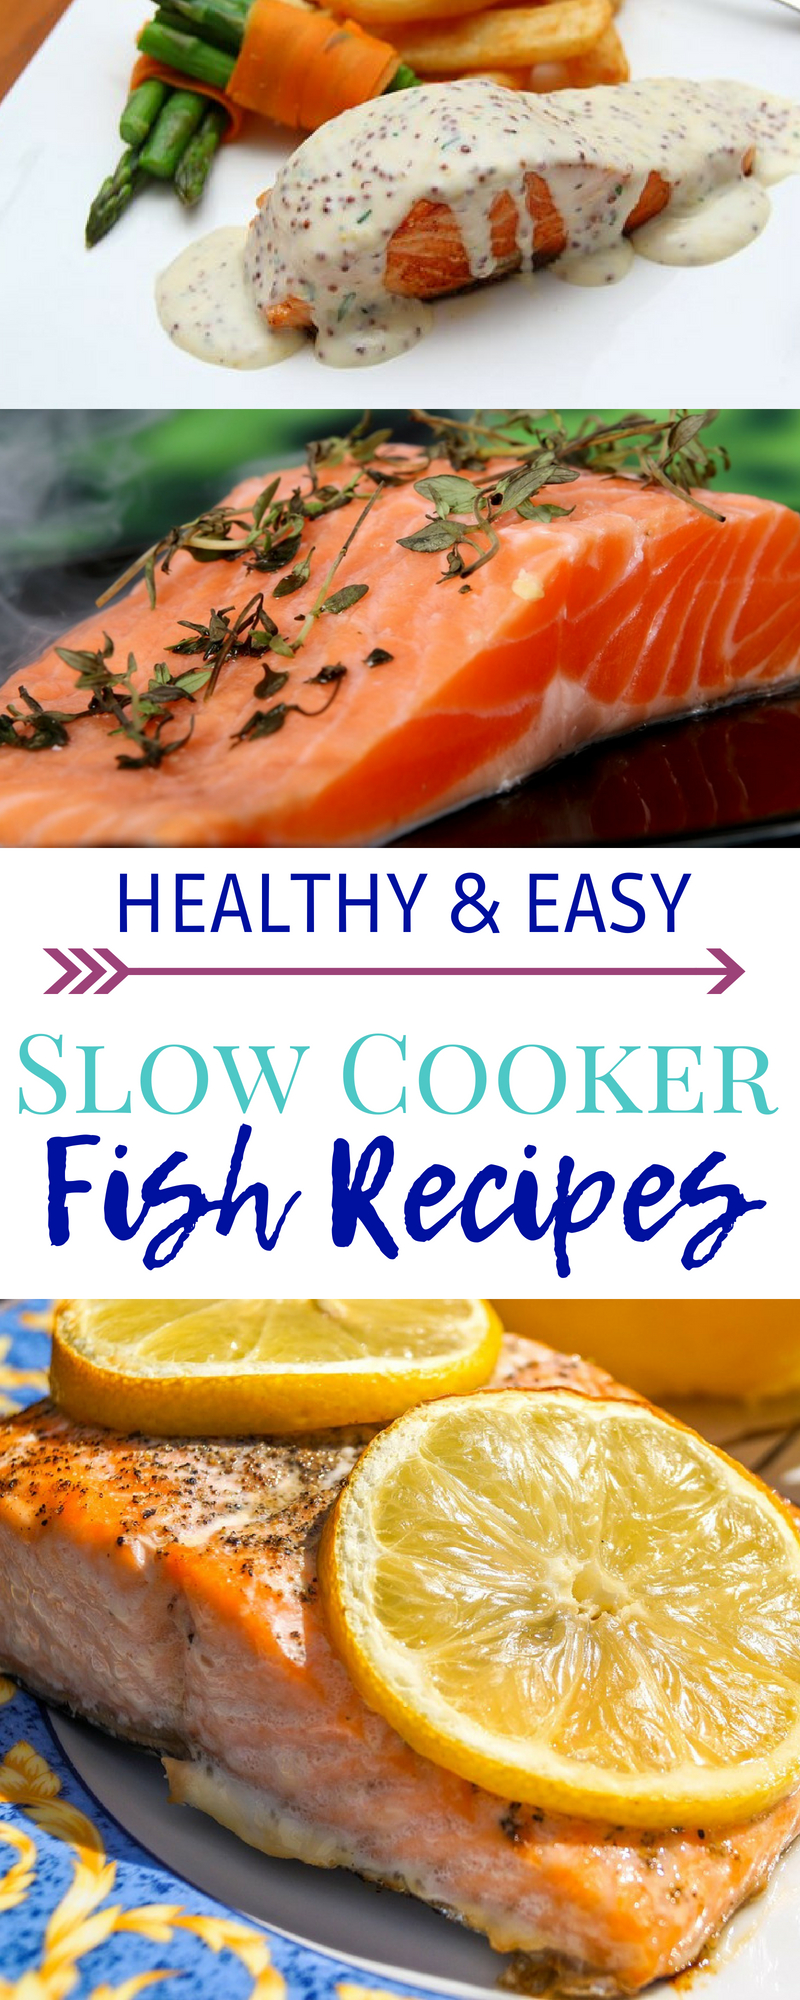 Fish slow cooker recipes that the whole family will love!  These fish slow cooker recipes are the easiest way to cook fish perfectly every time. #fish #slowcooker #crockpot #salmon #whitefish #tuna #pollock #fishrecipe #easyrecipe